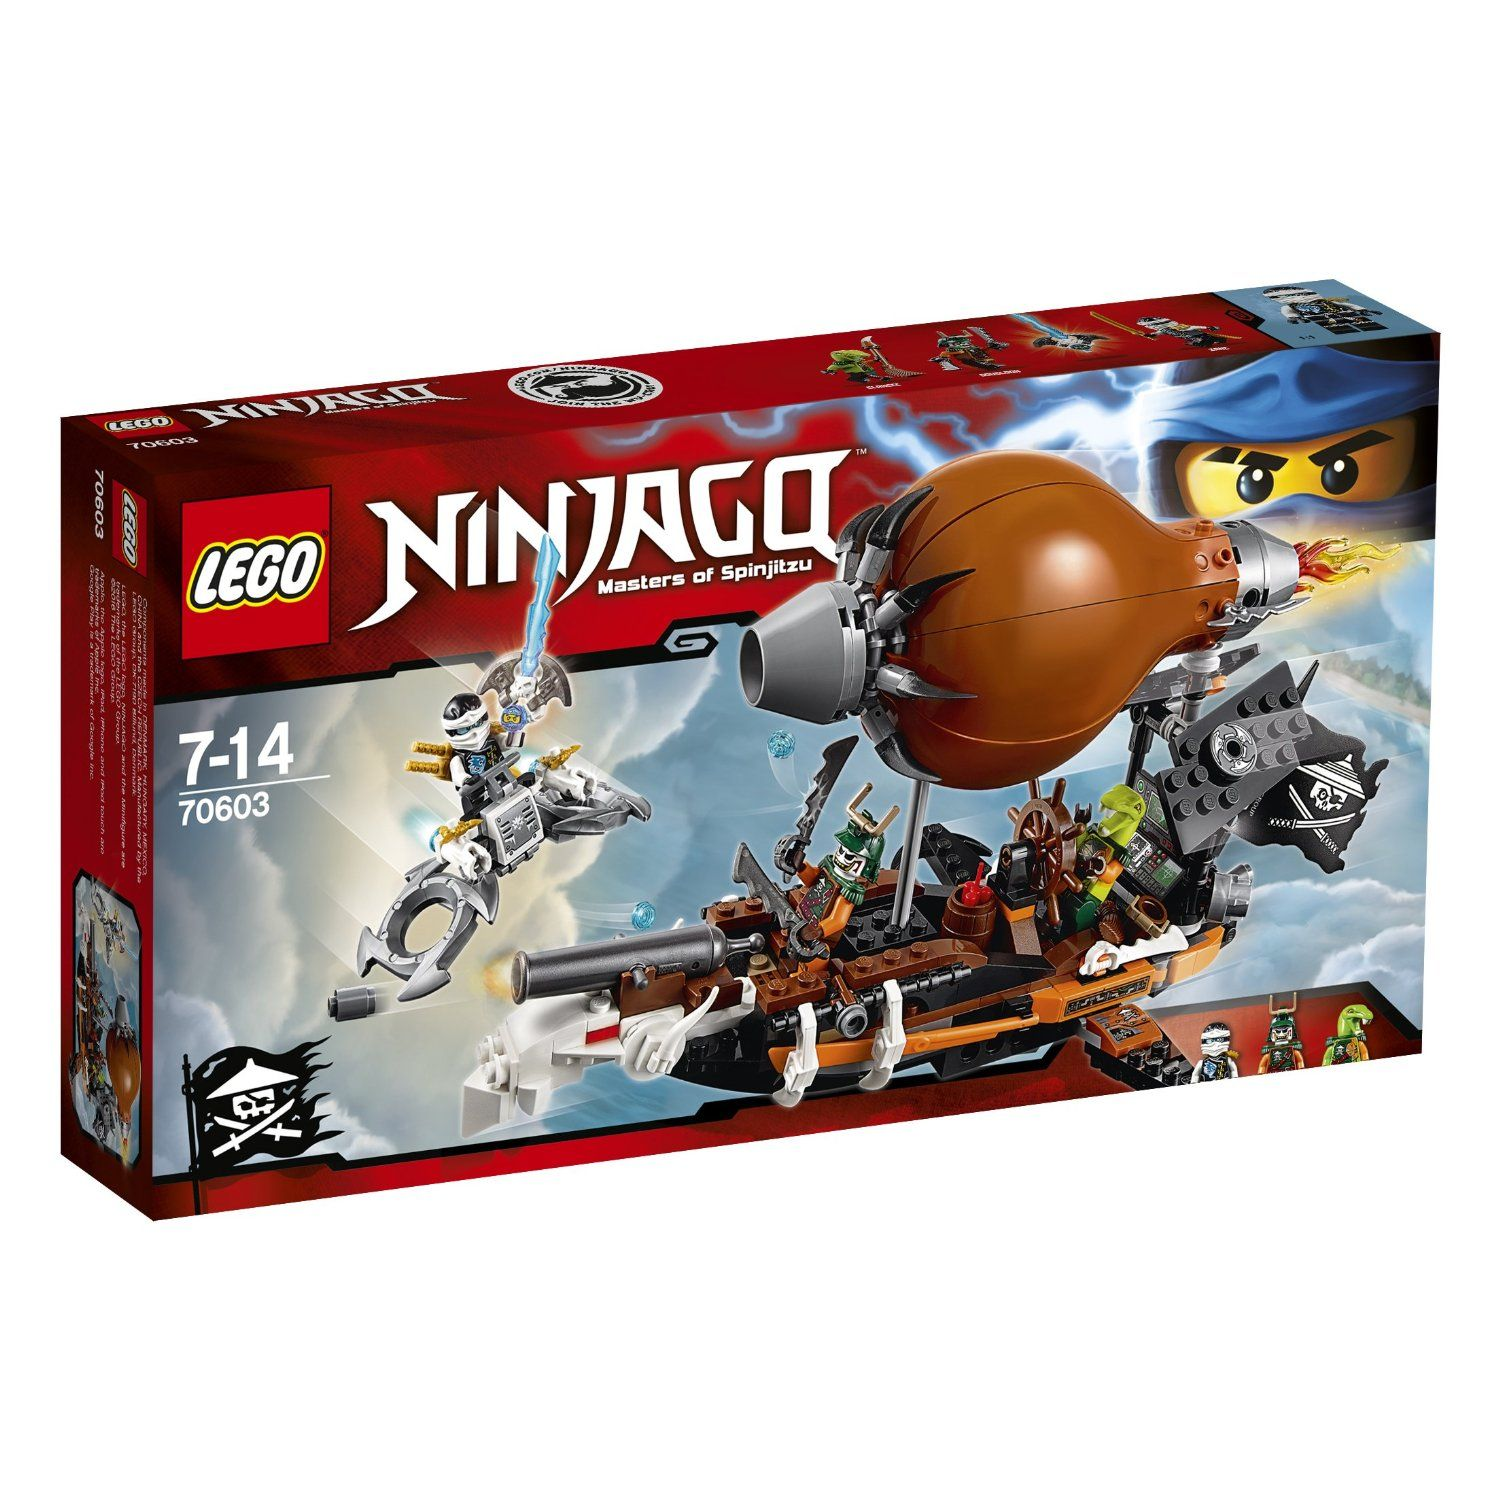 Ninjago Kinderzimmer Amazon France Has Just Published The First Set Of Official